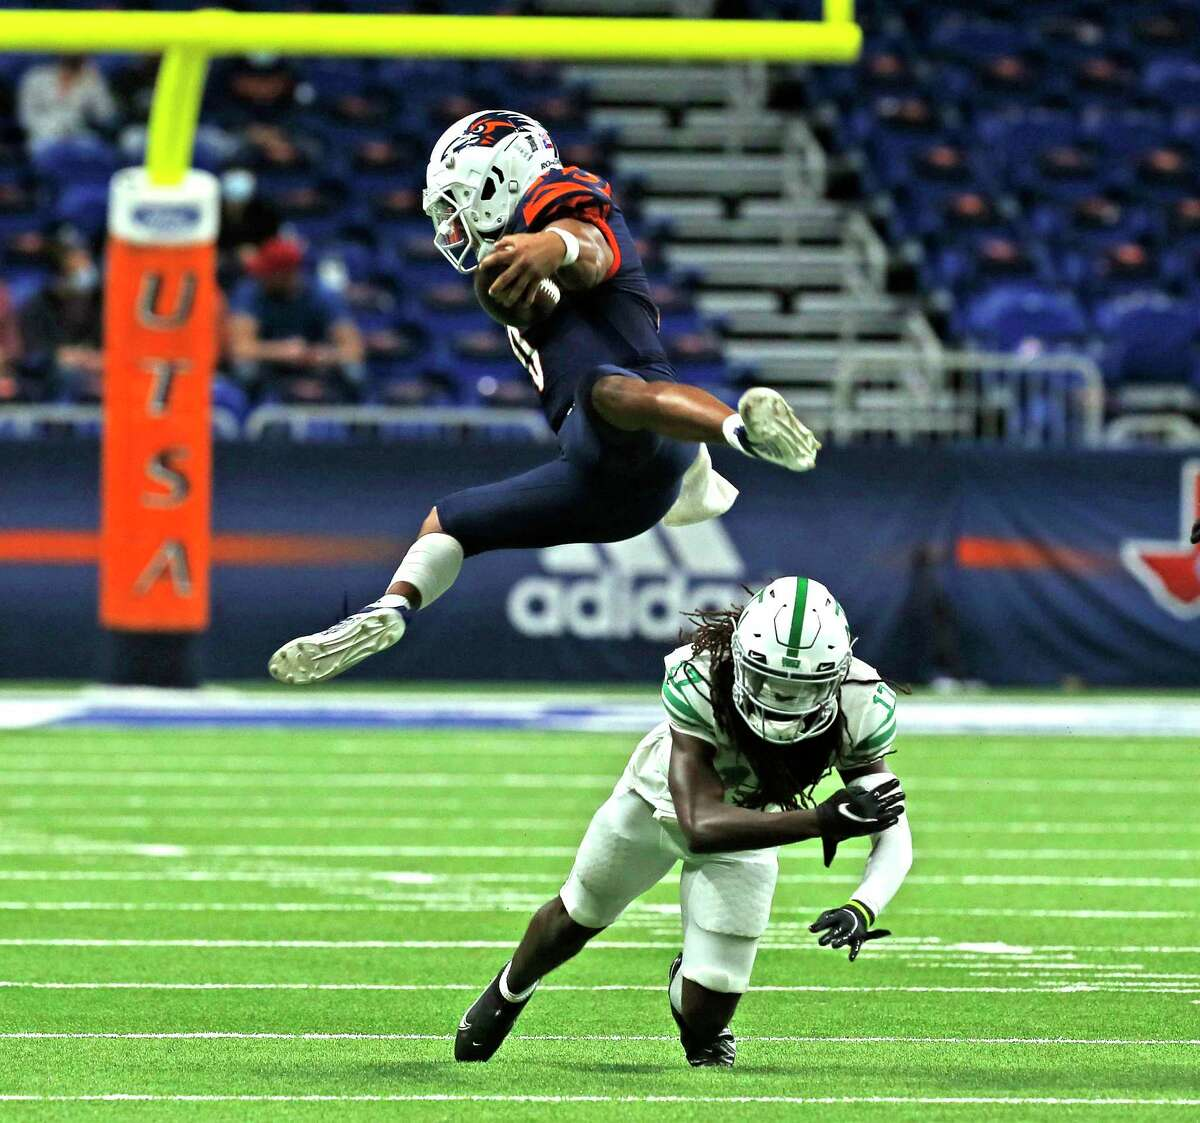 In switching its bowl plans, UTSA has shown that it is as nimble as quarterback Frank Harris was against North Texas.